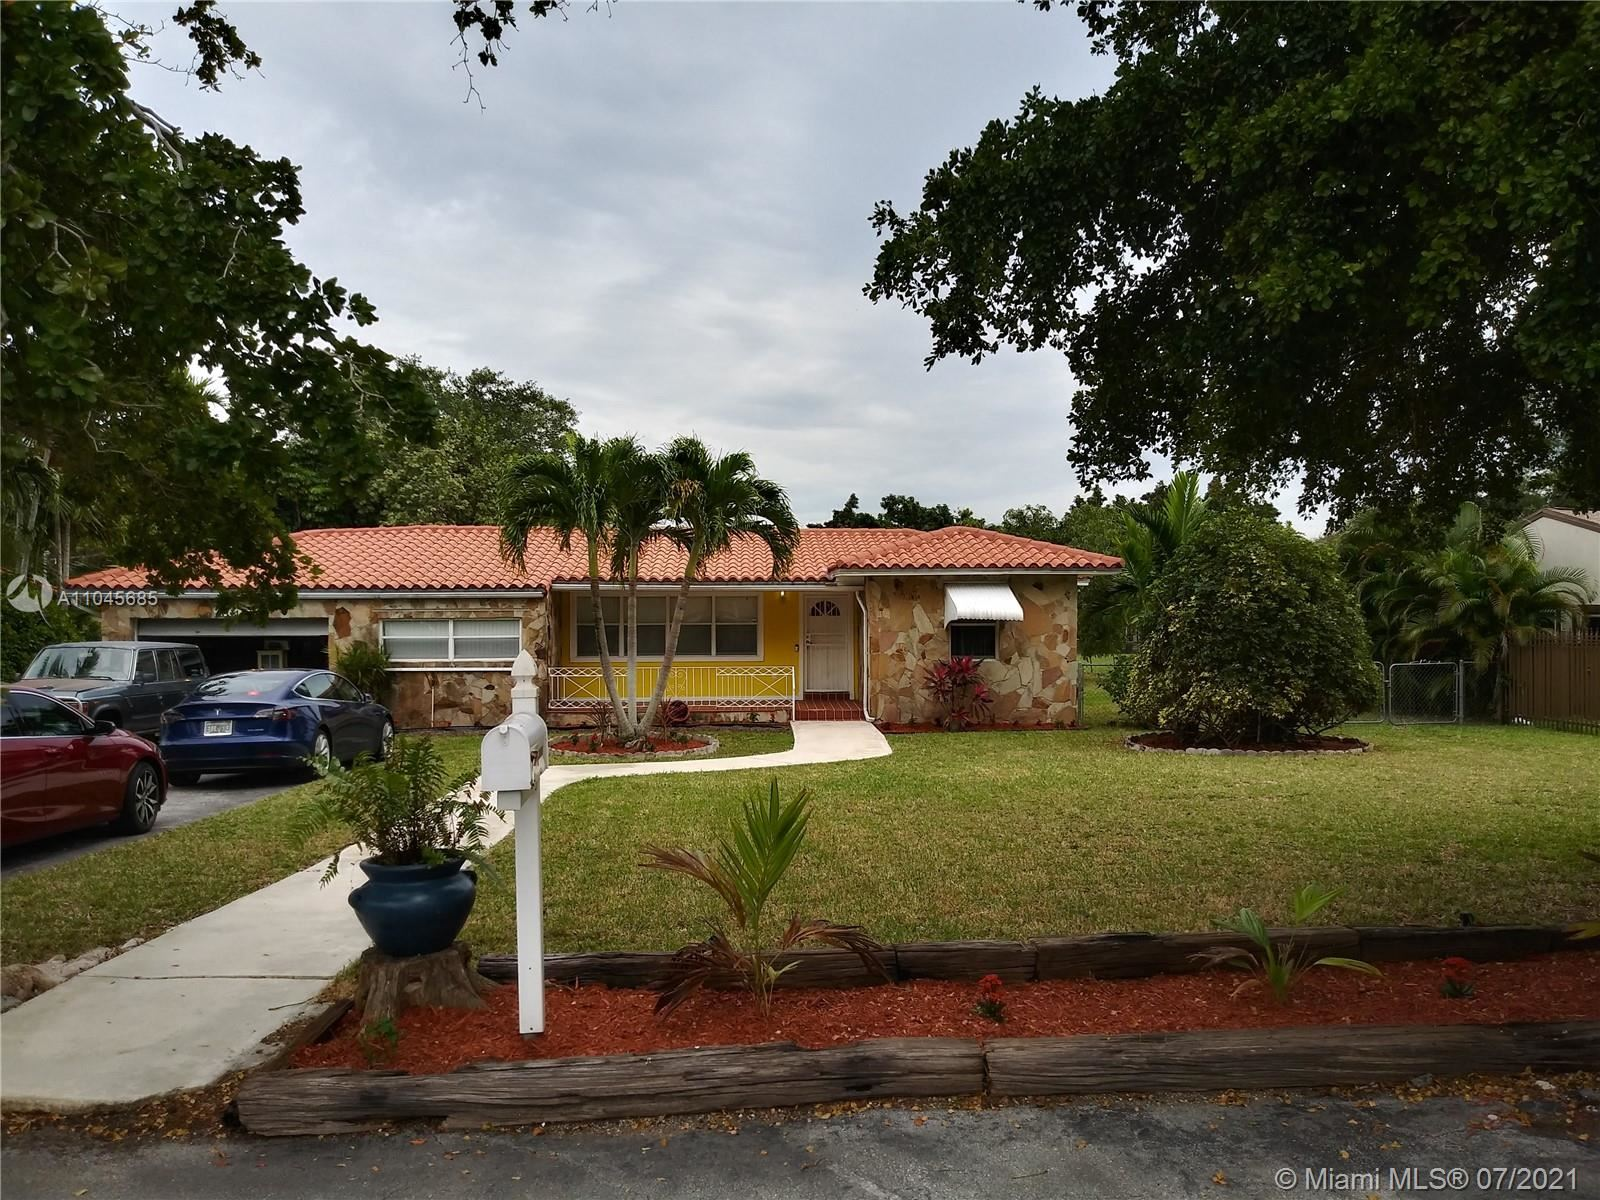 14131 NW 3rd Ave, Miami, FL 33168 - #: A11045685